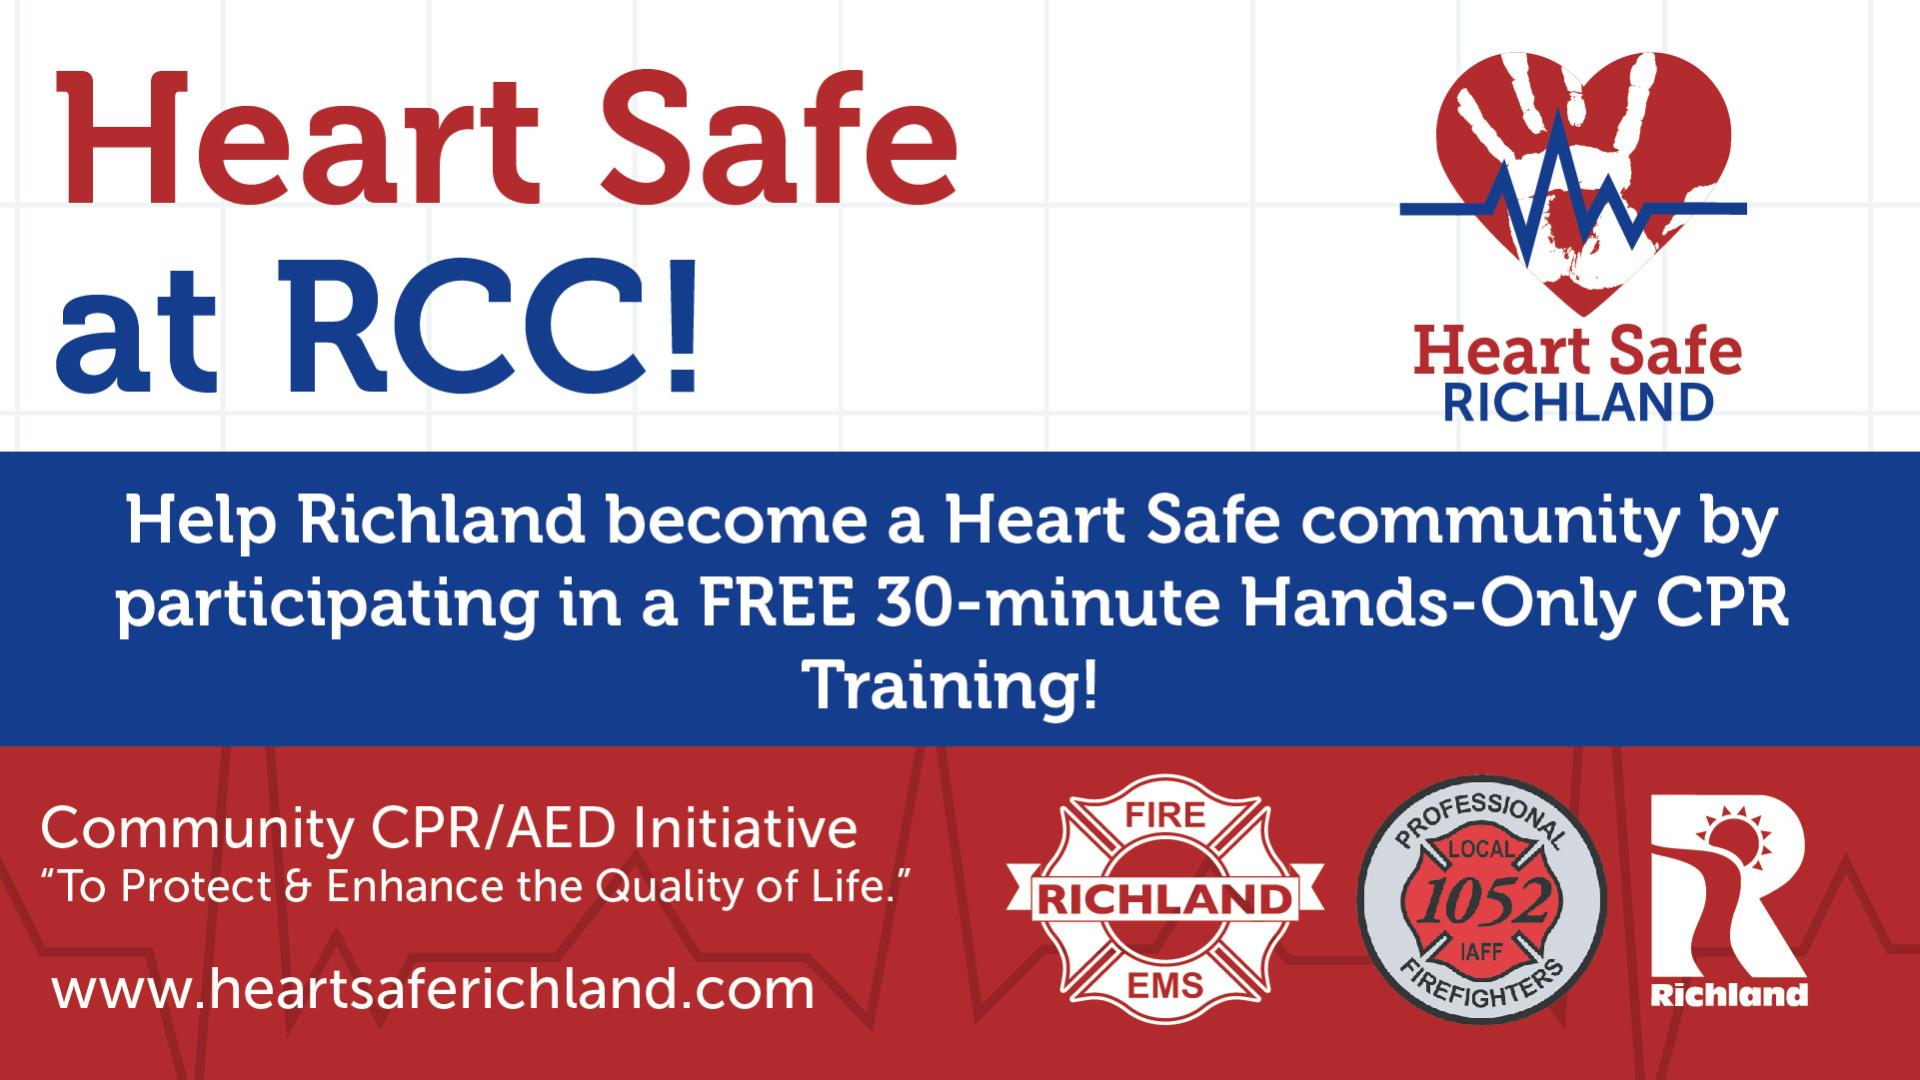 Heart Safe Richland CPR Classes